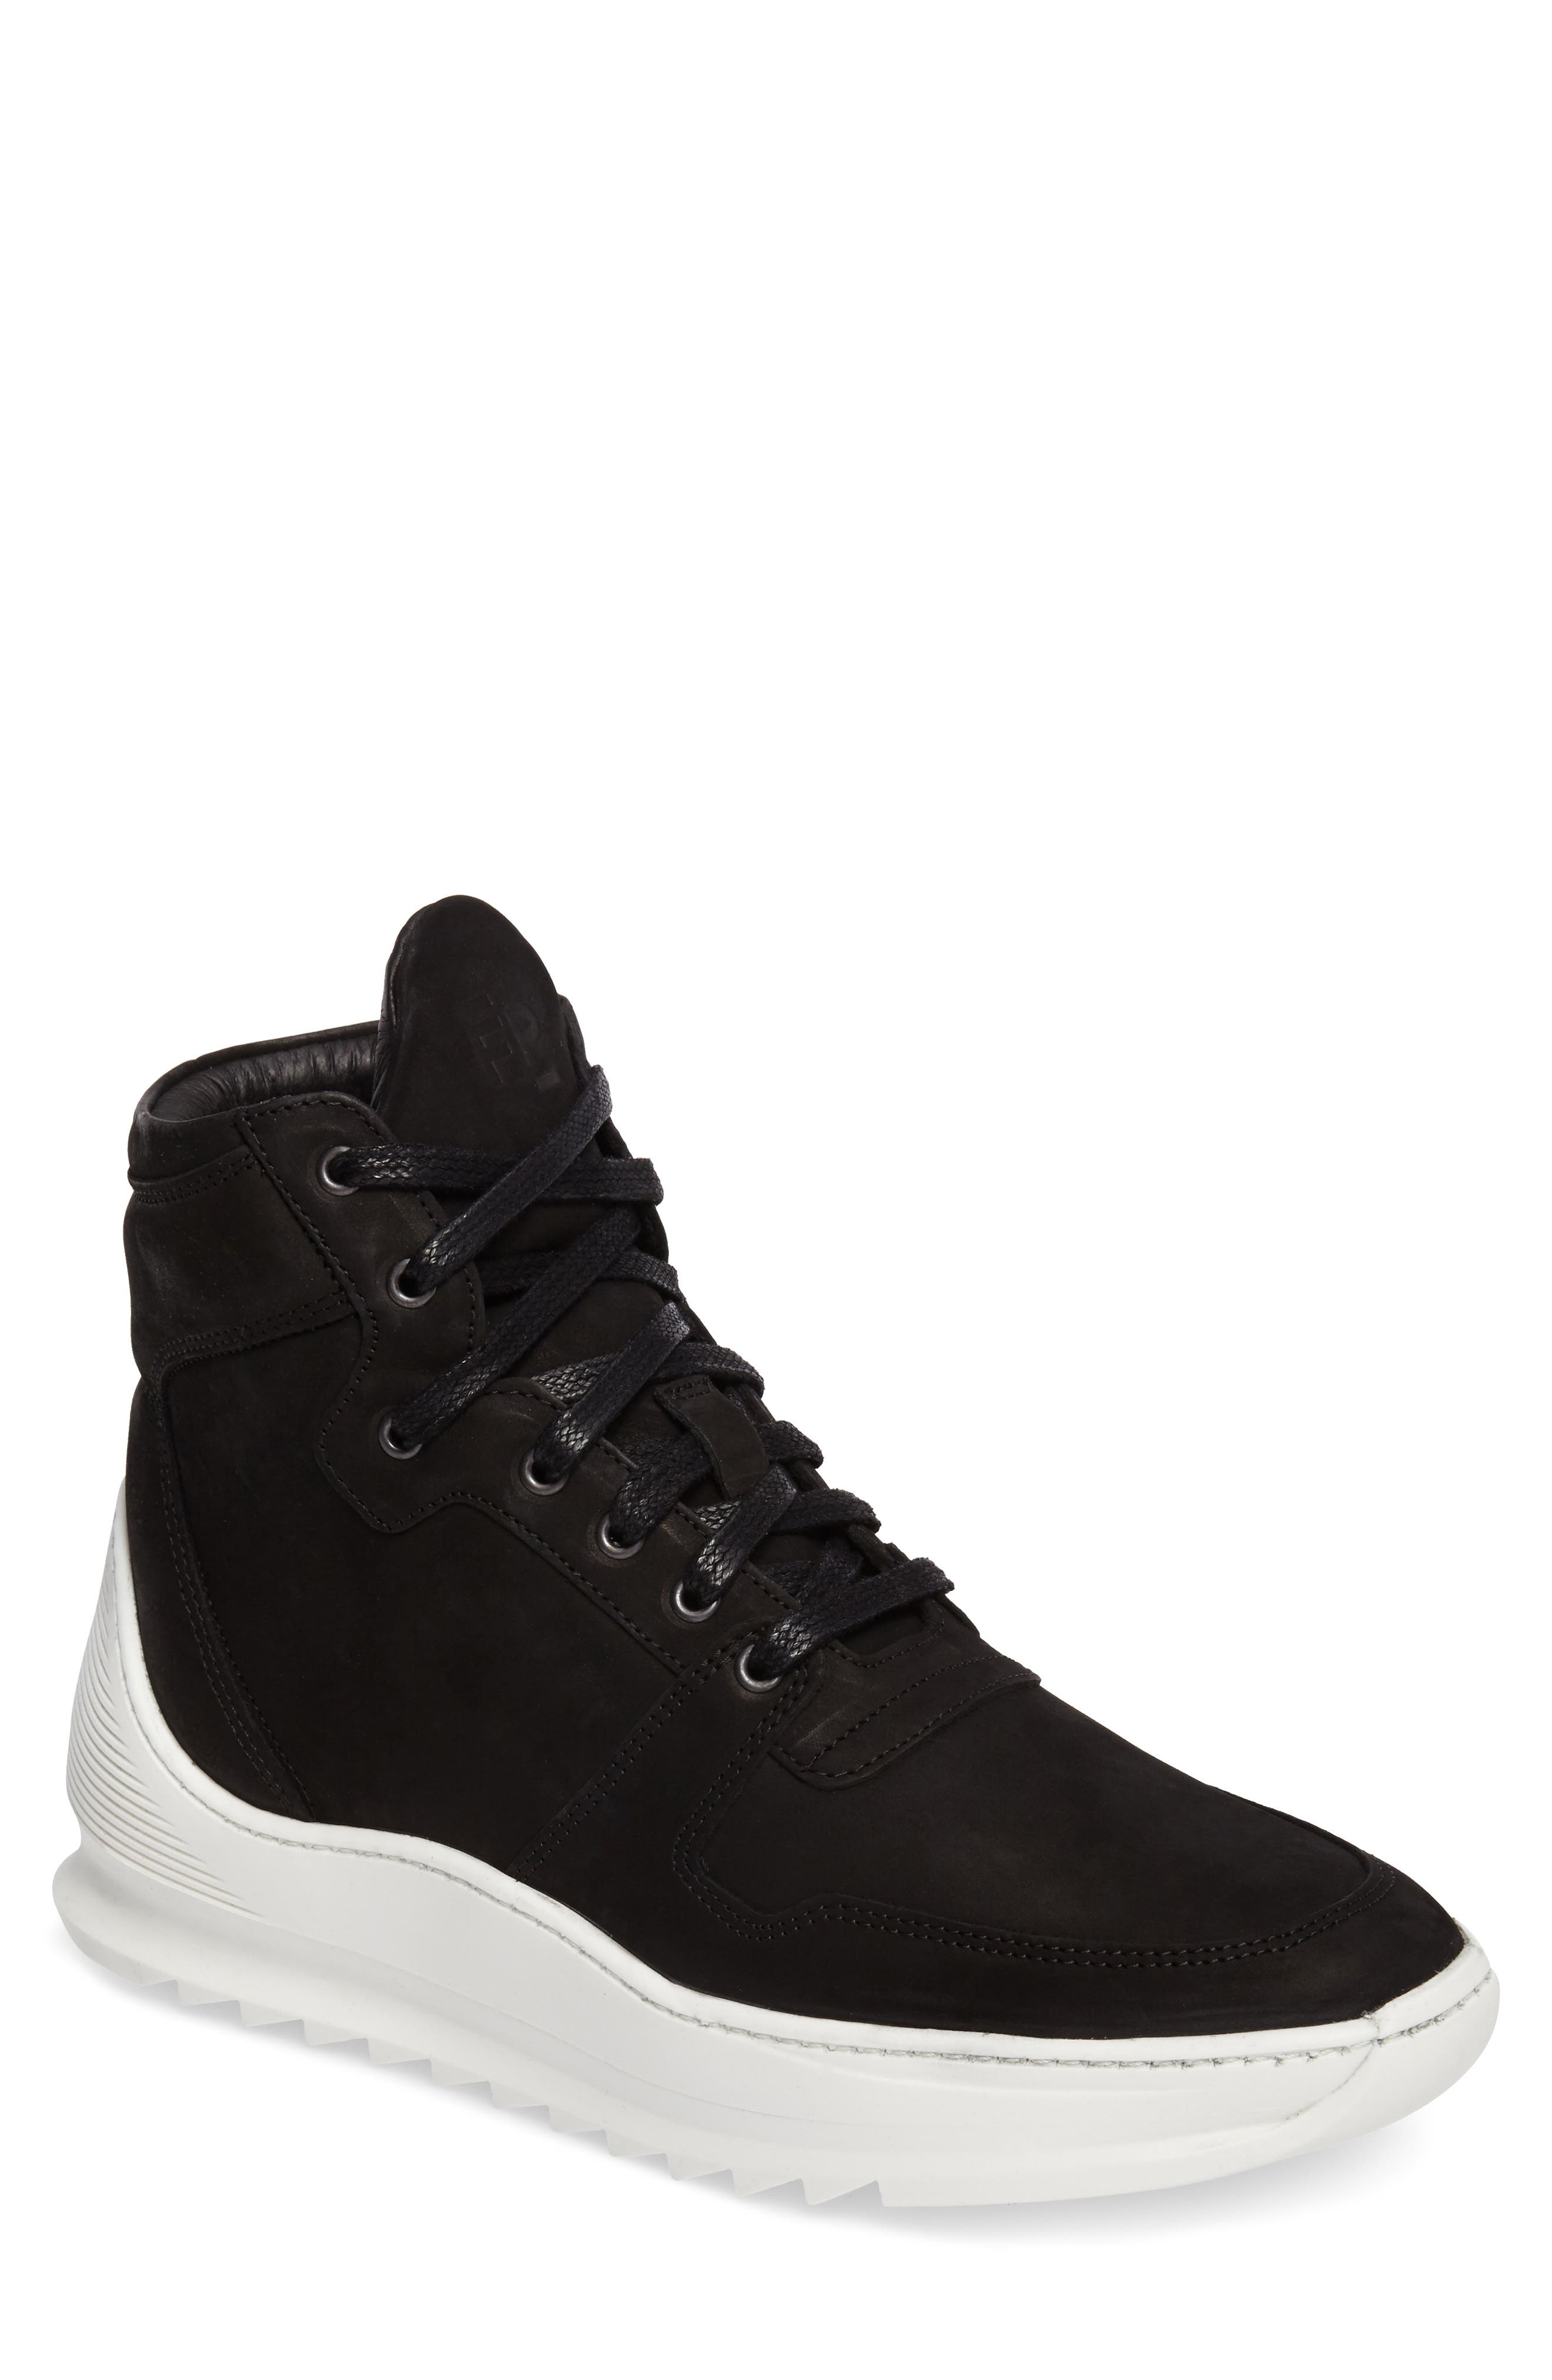 Alternate Image 1 Selected - Filling Pieces Transformed Sneaker (Men)